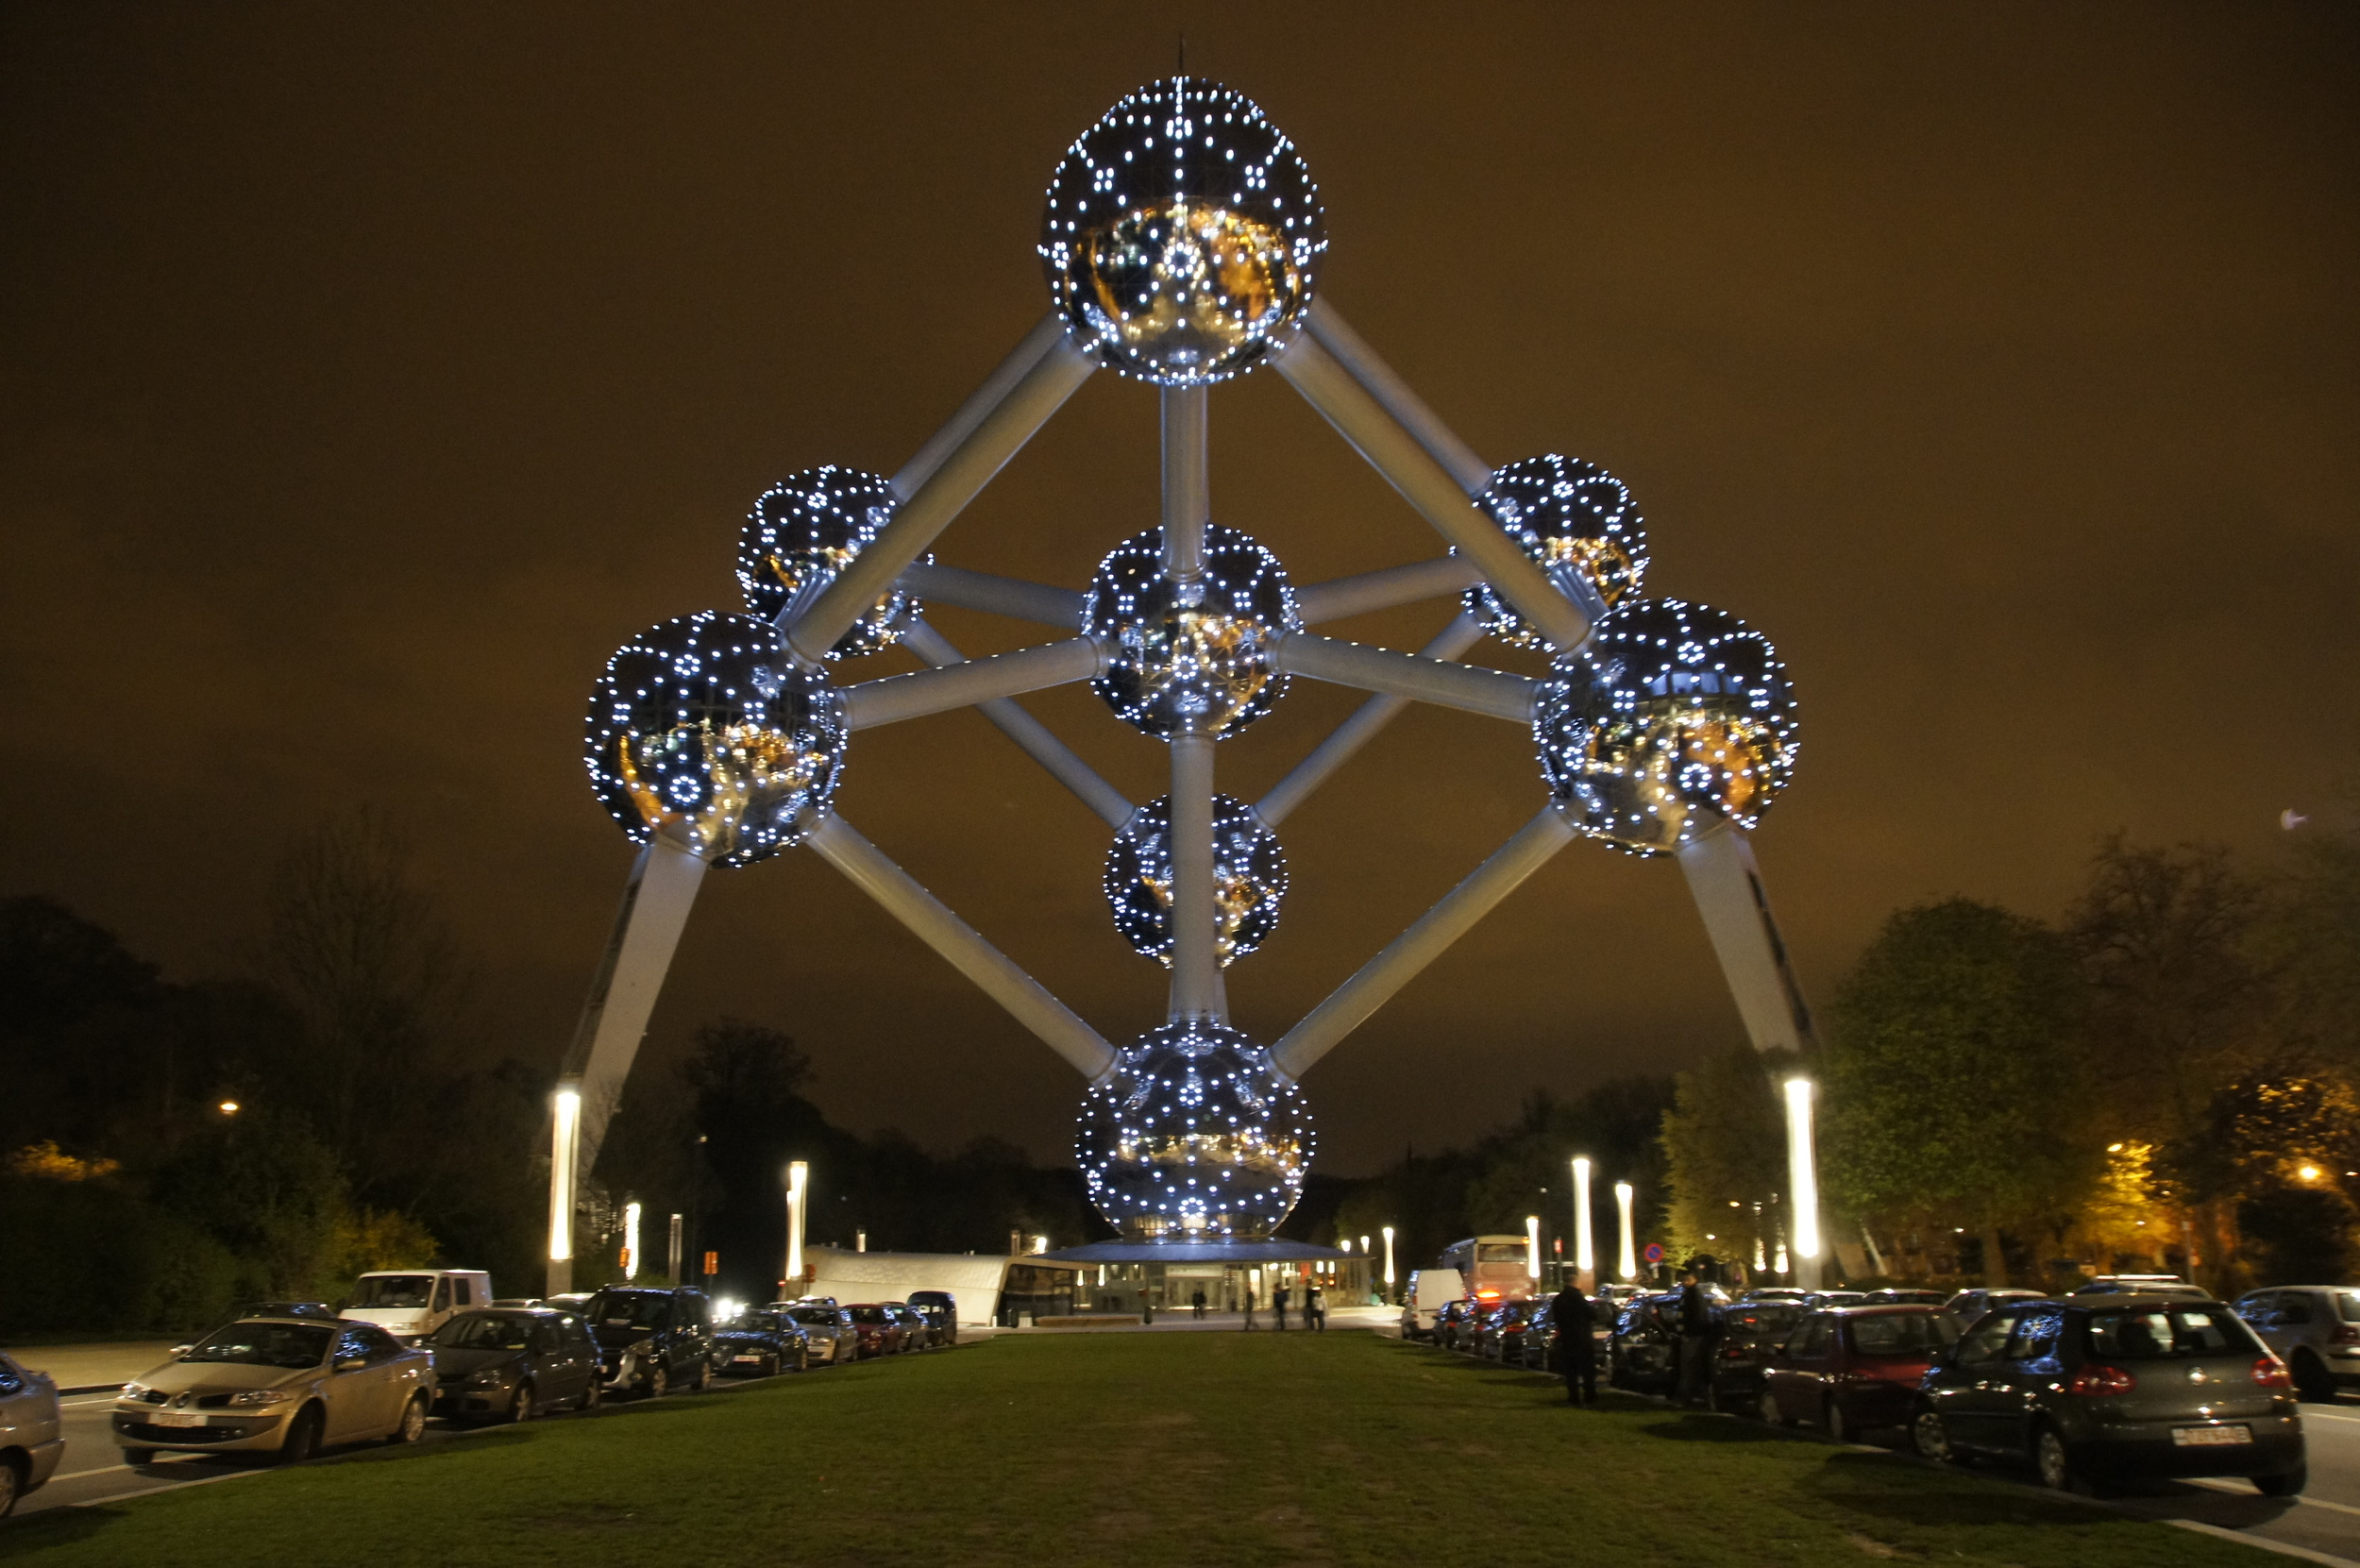 Brussels' Atomium by night - it reopened on Tuesday. Image credit:    Niels Mickers   /Flickr